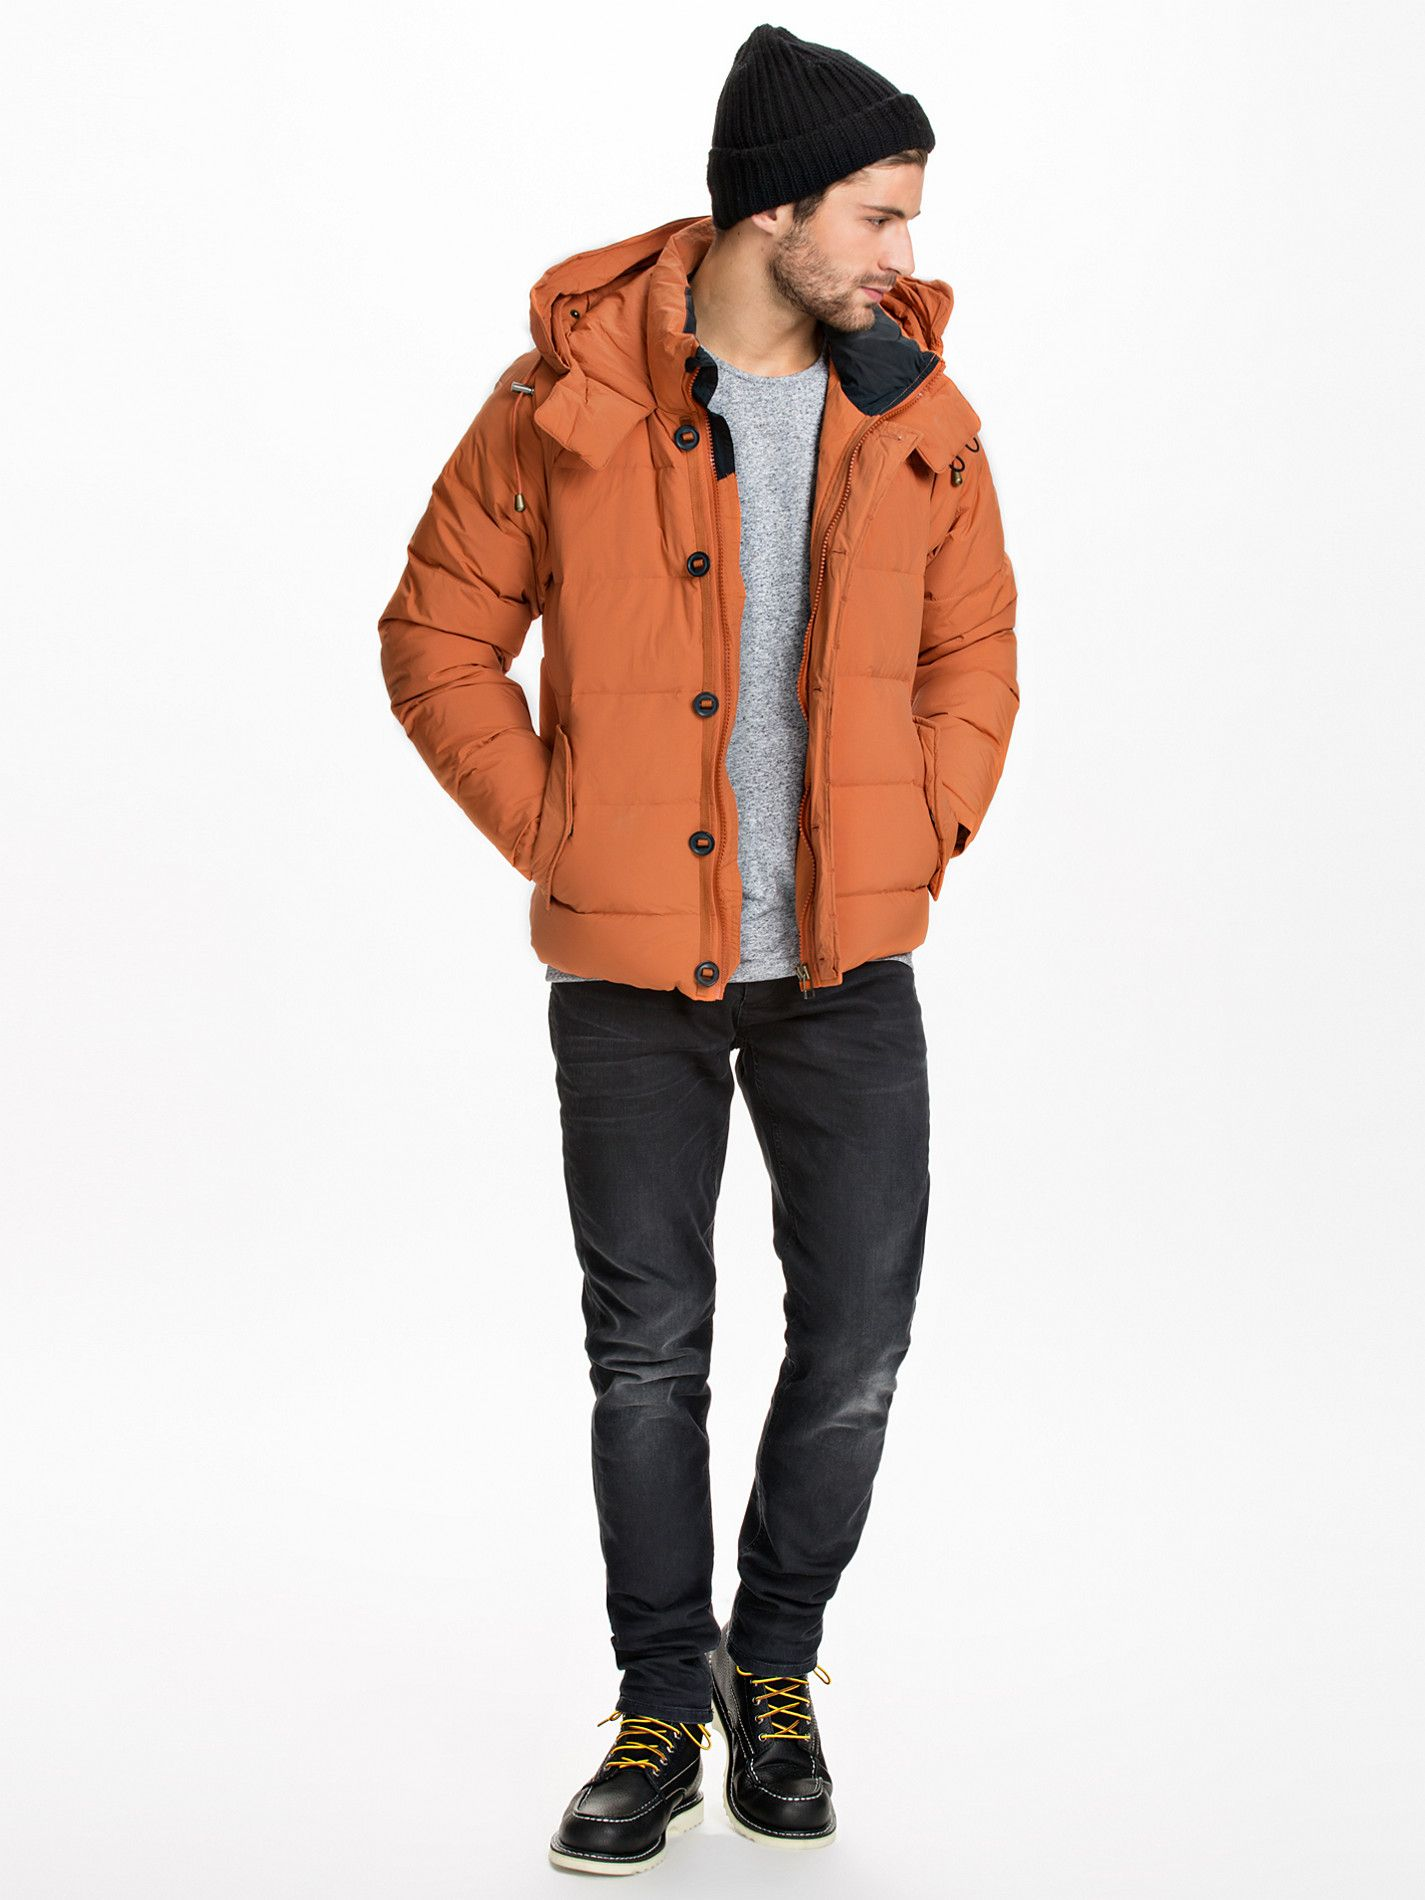 2be63e86 The Iconic Down Jacket - Selected Homme - Rust - Jackets And Coats -  Clothing - Men - NlyMan.com